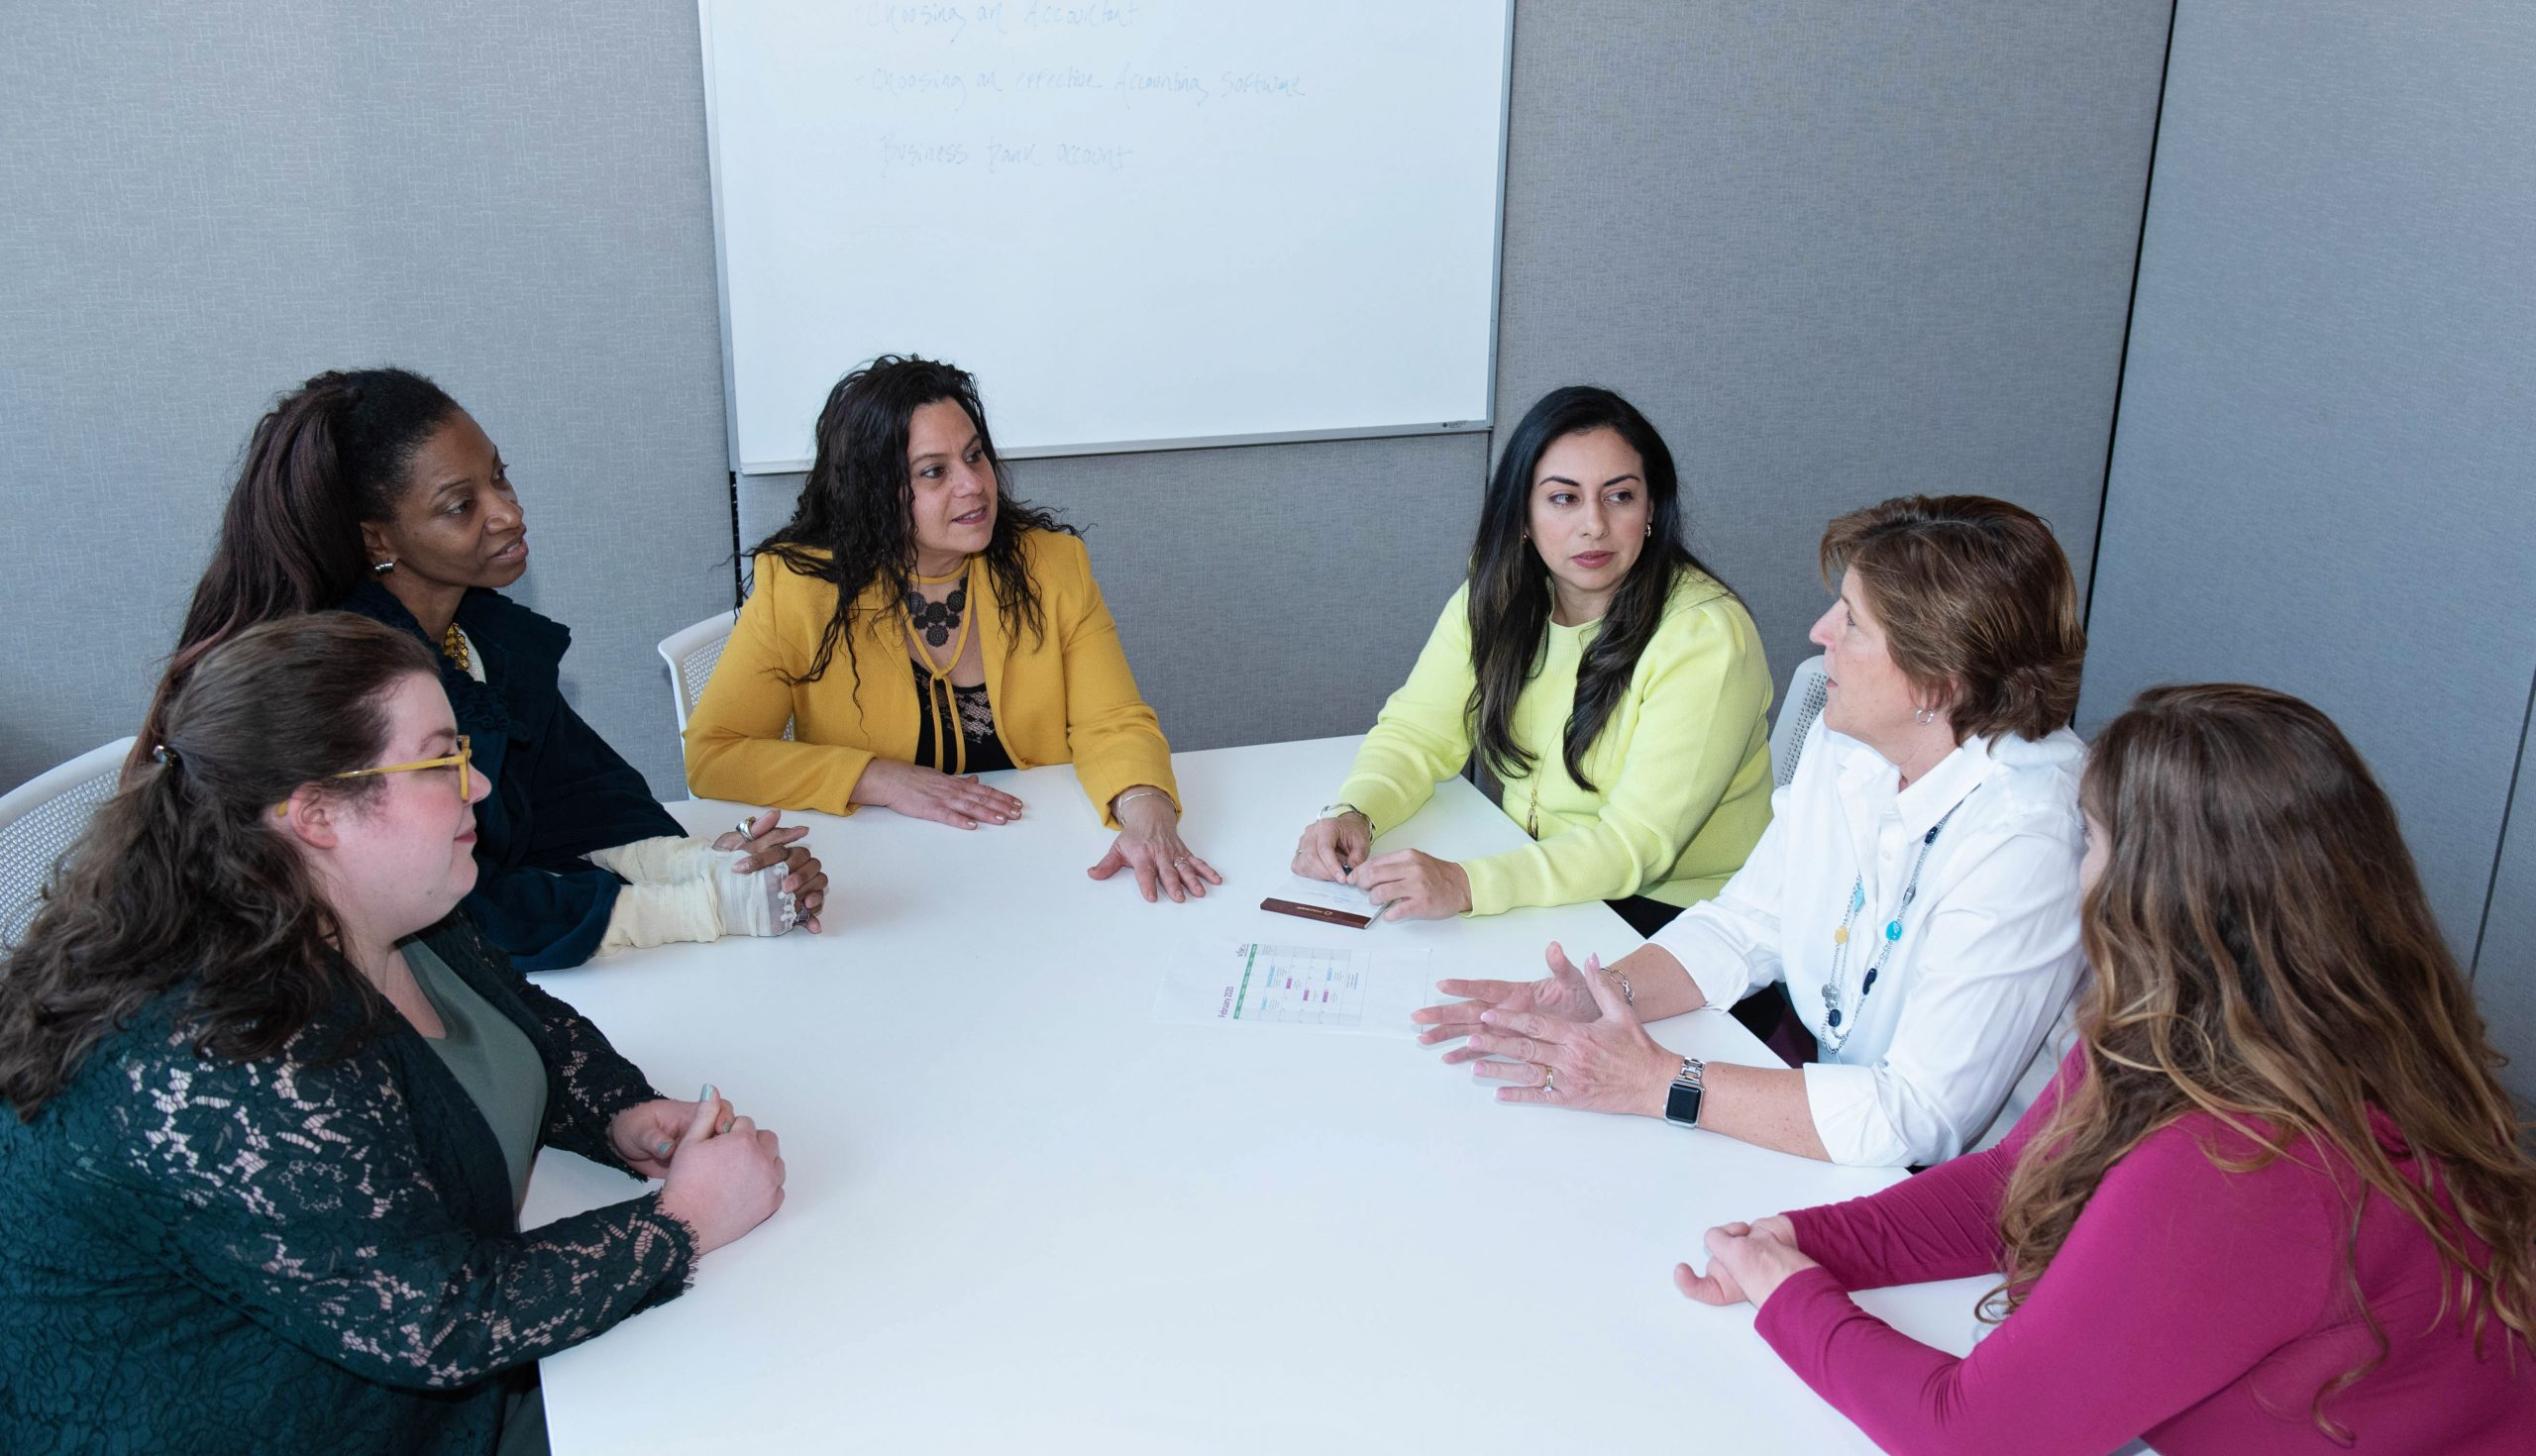 Wise Women Business Professional Center Photo Round table talk together six